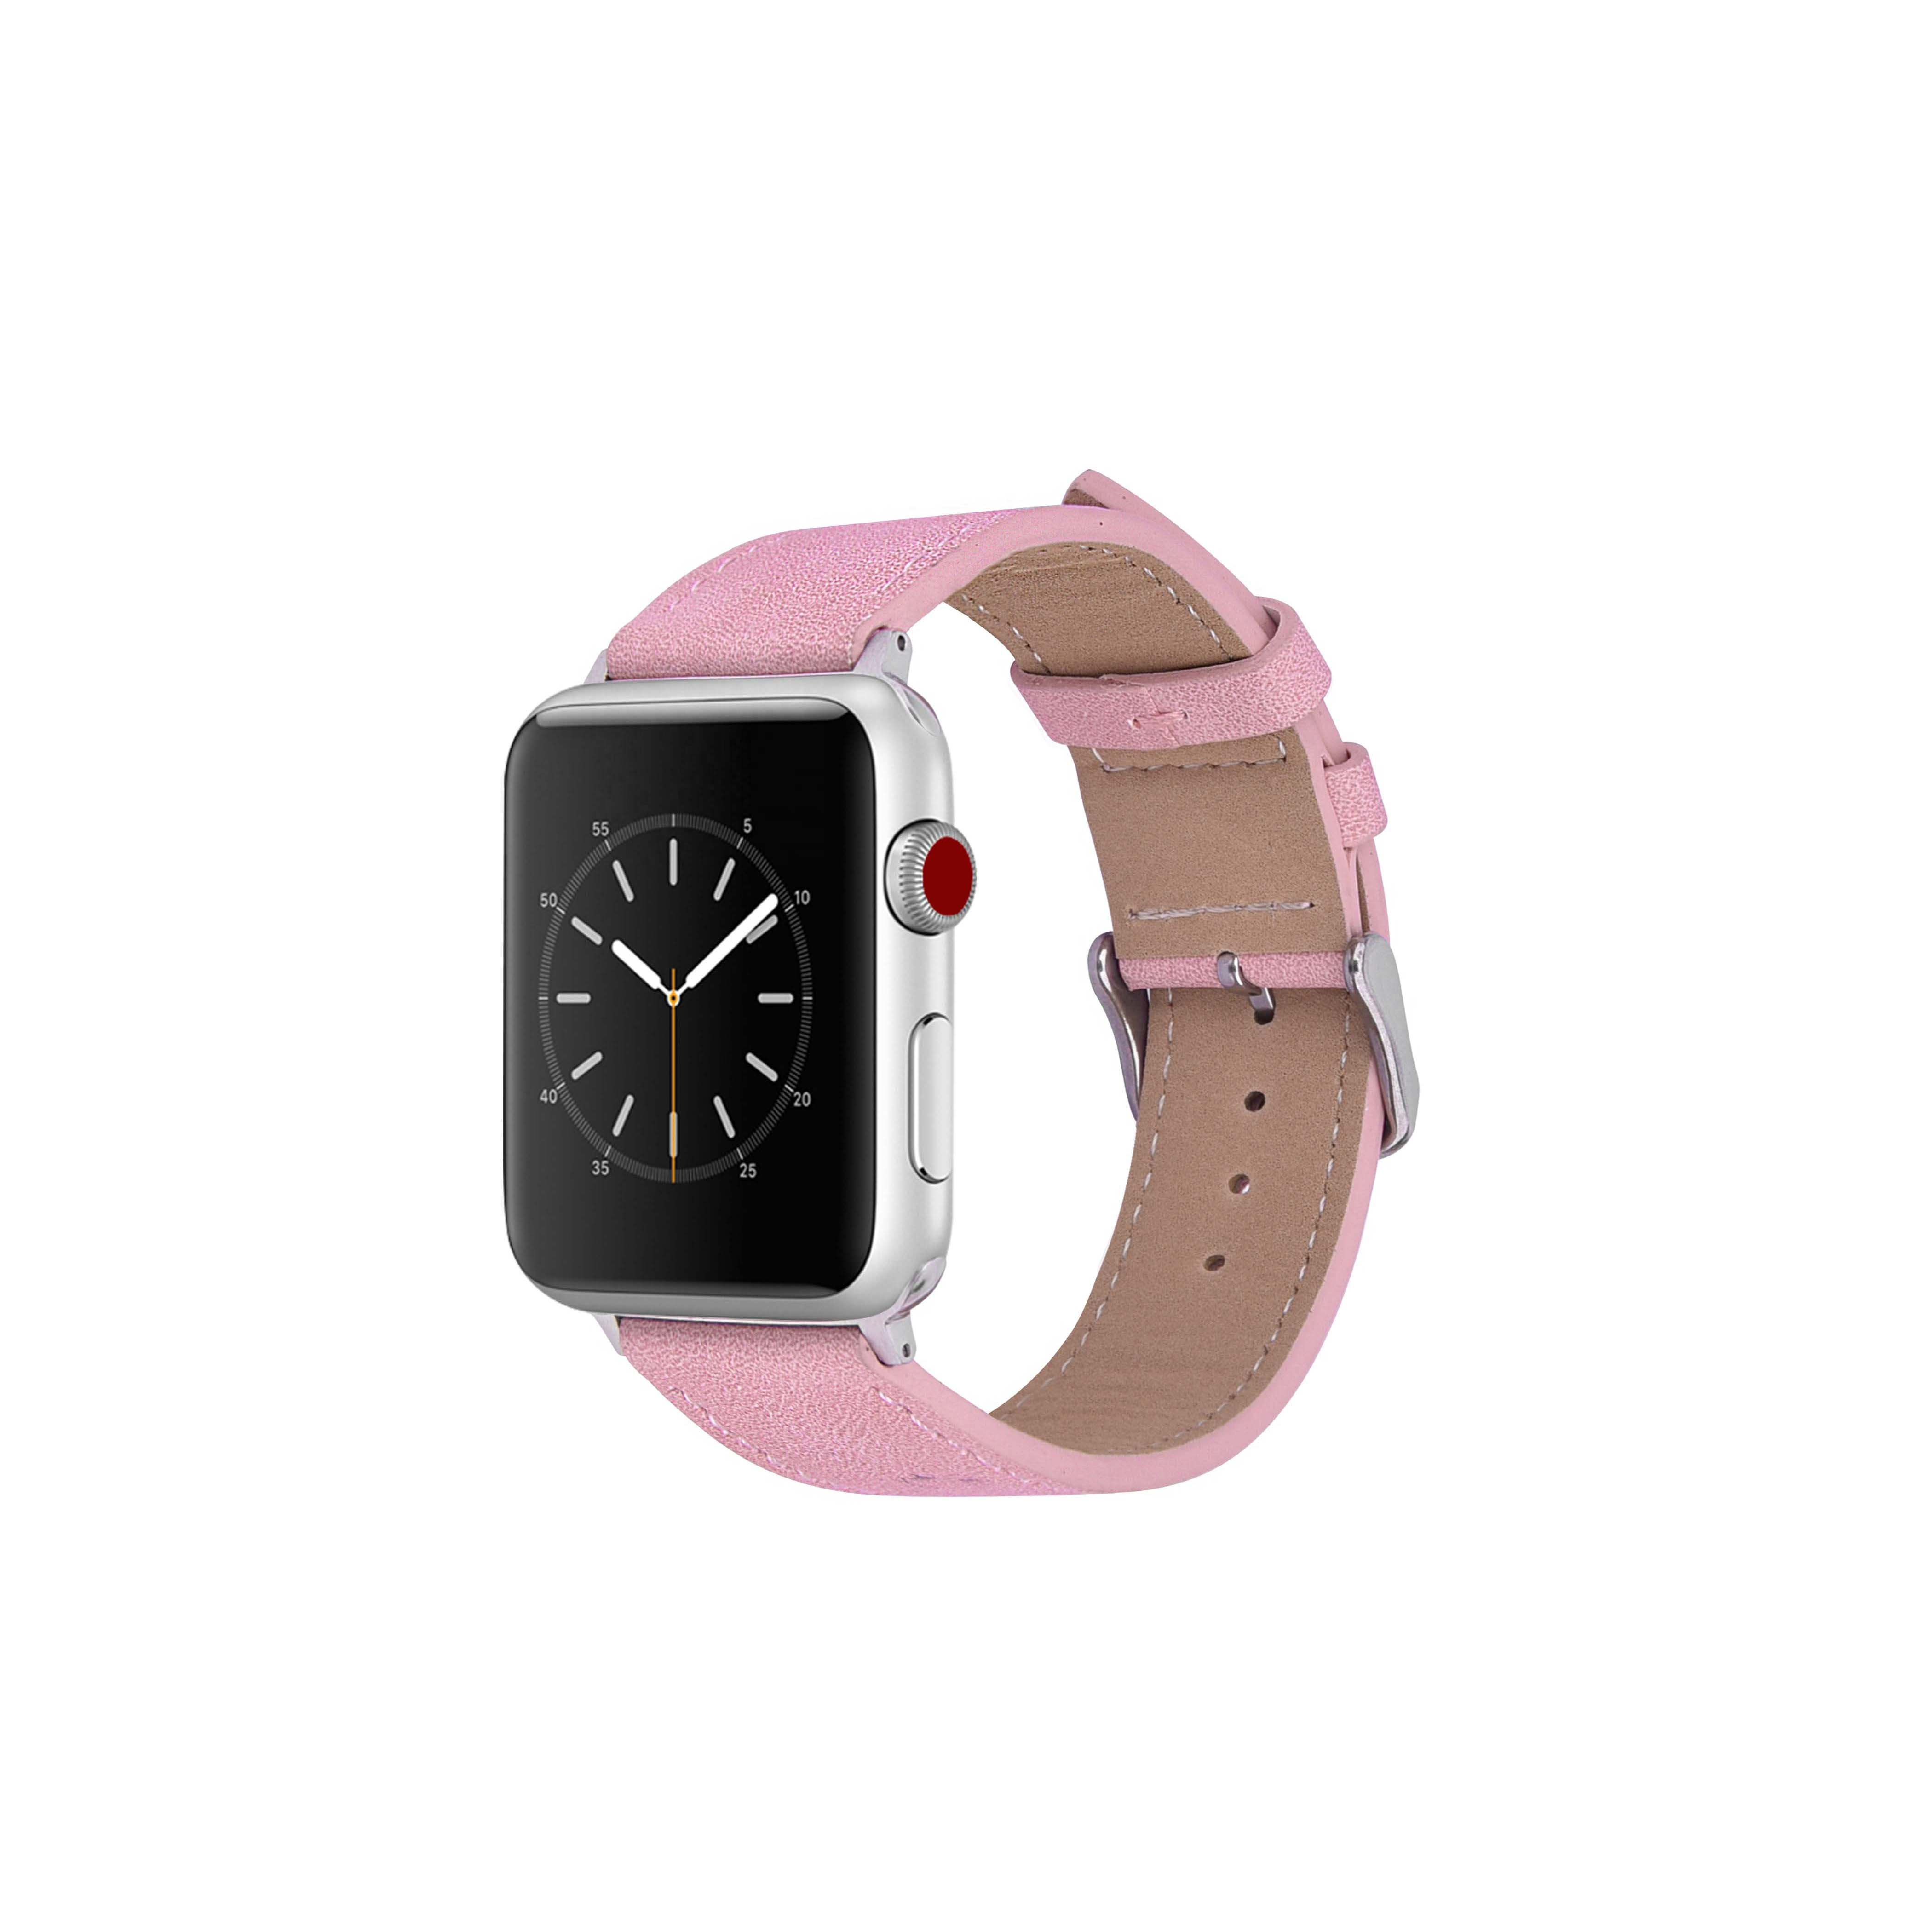 Solid Color Smart Watch Band Strap 38/40 42/44, Soft High Quality  Woman Fashion  Leather  Watch Strap for Apple Watch 4 3 2 1